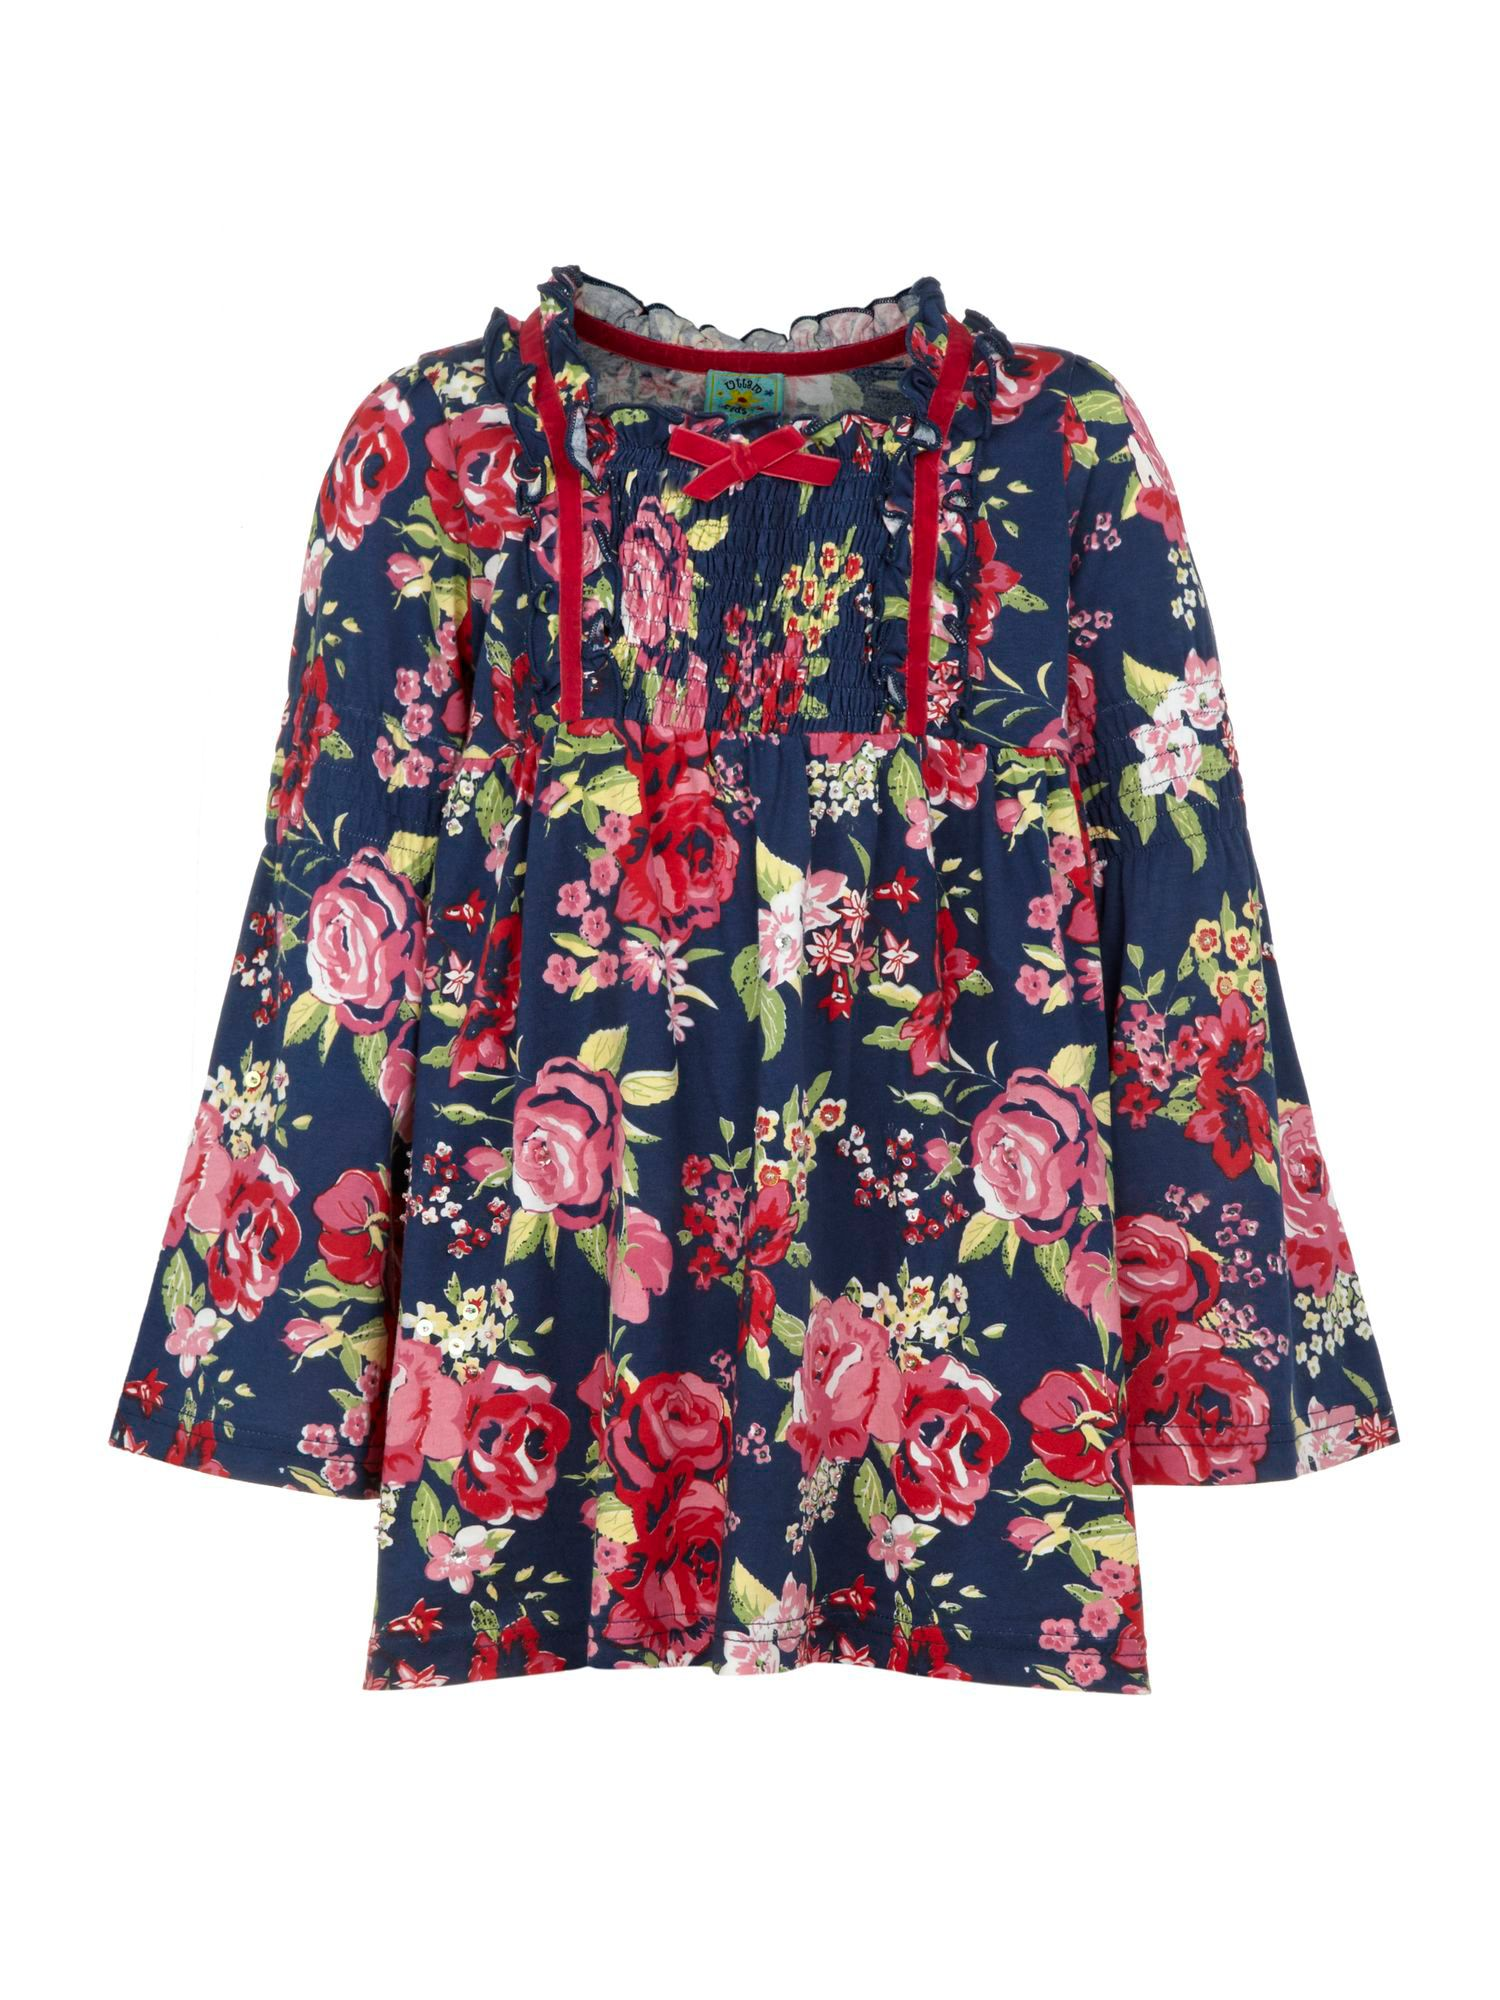 Girl's rose print smock top